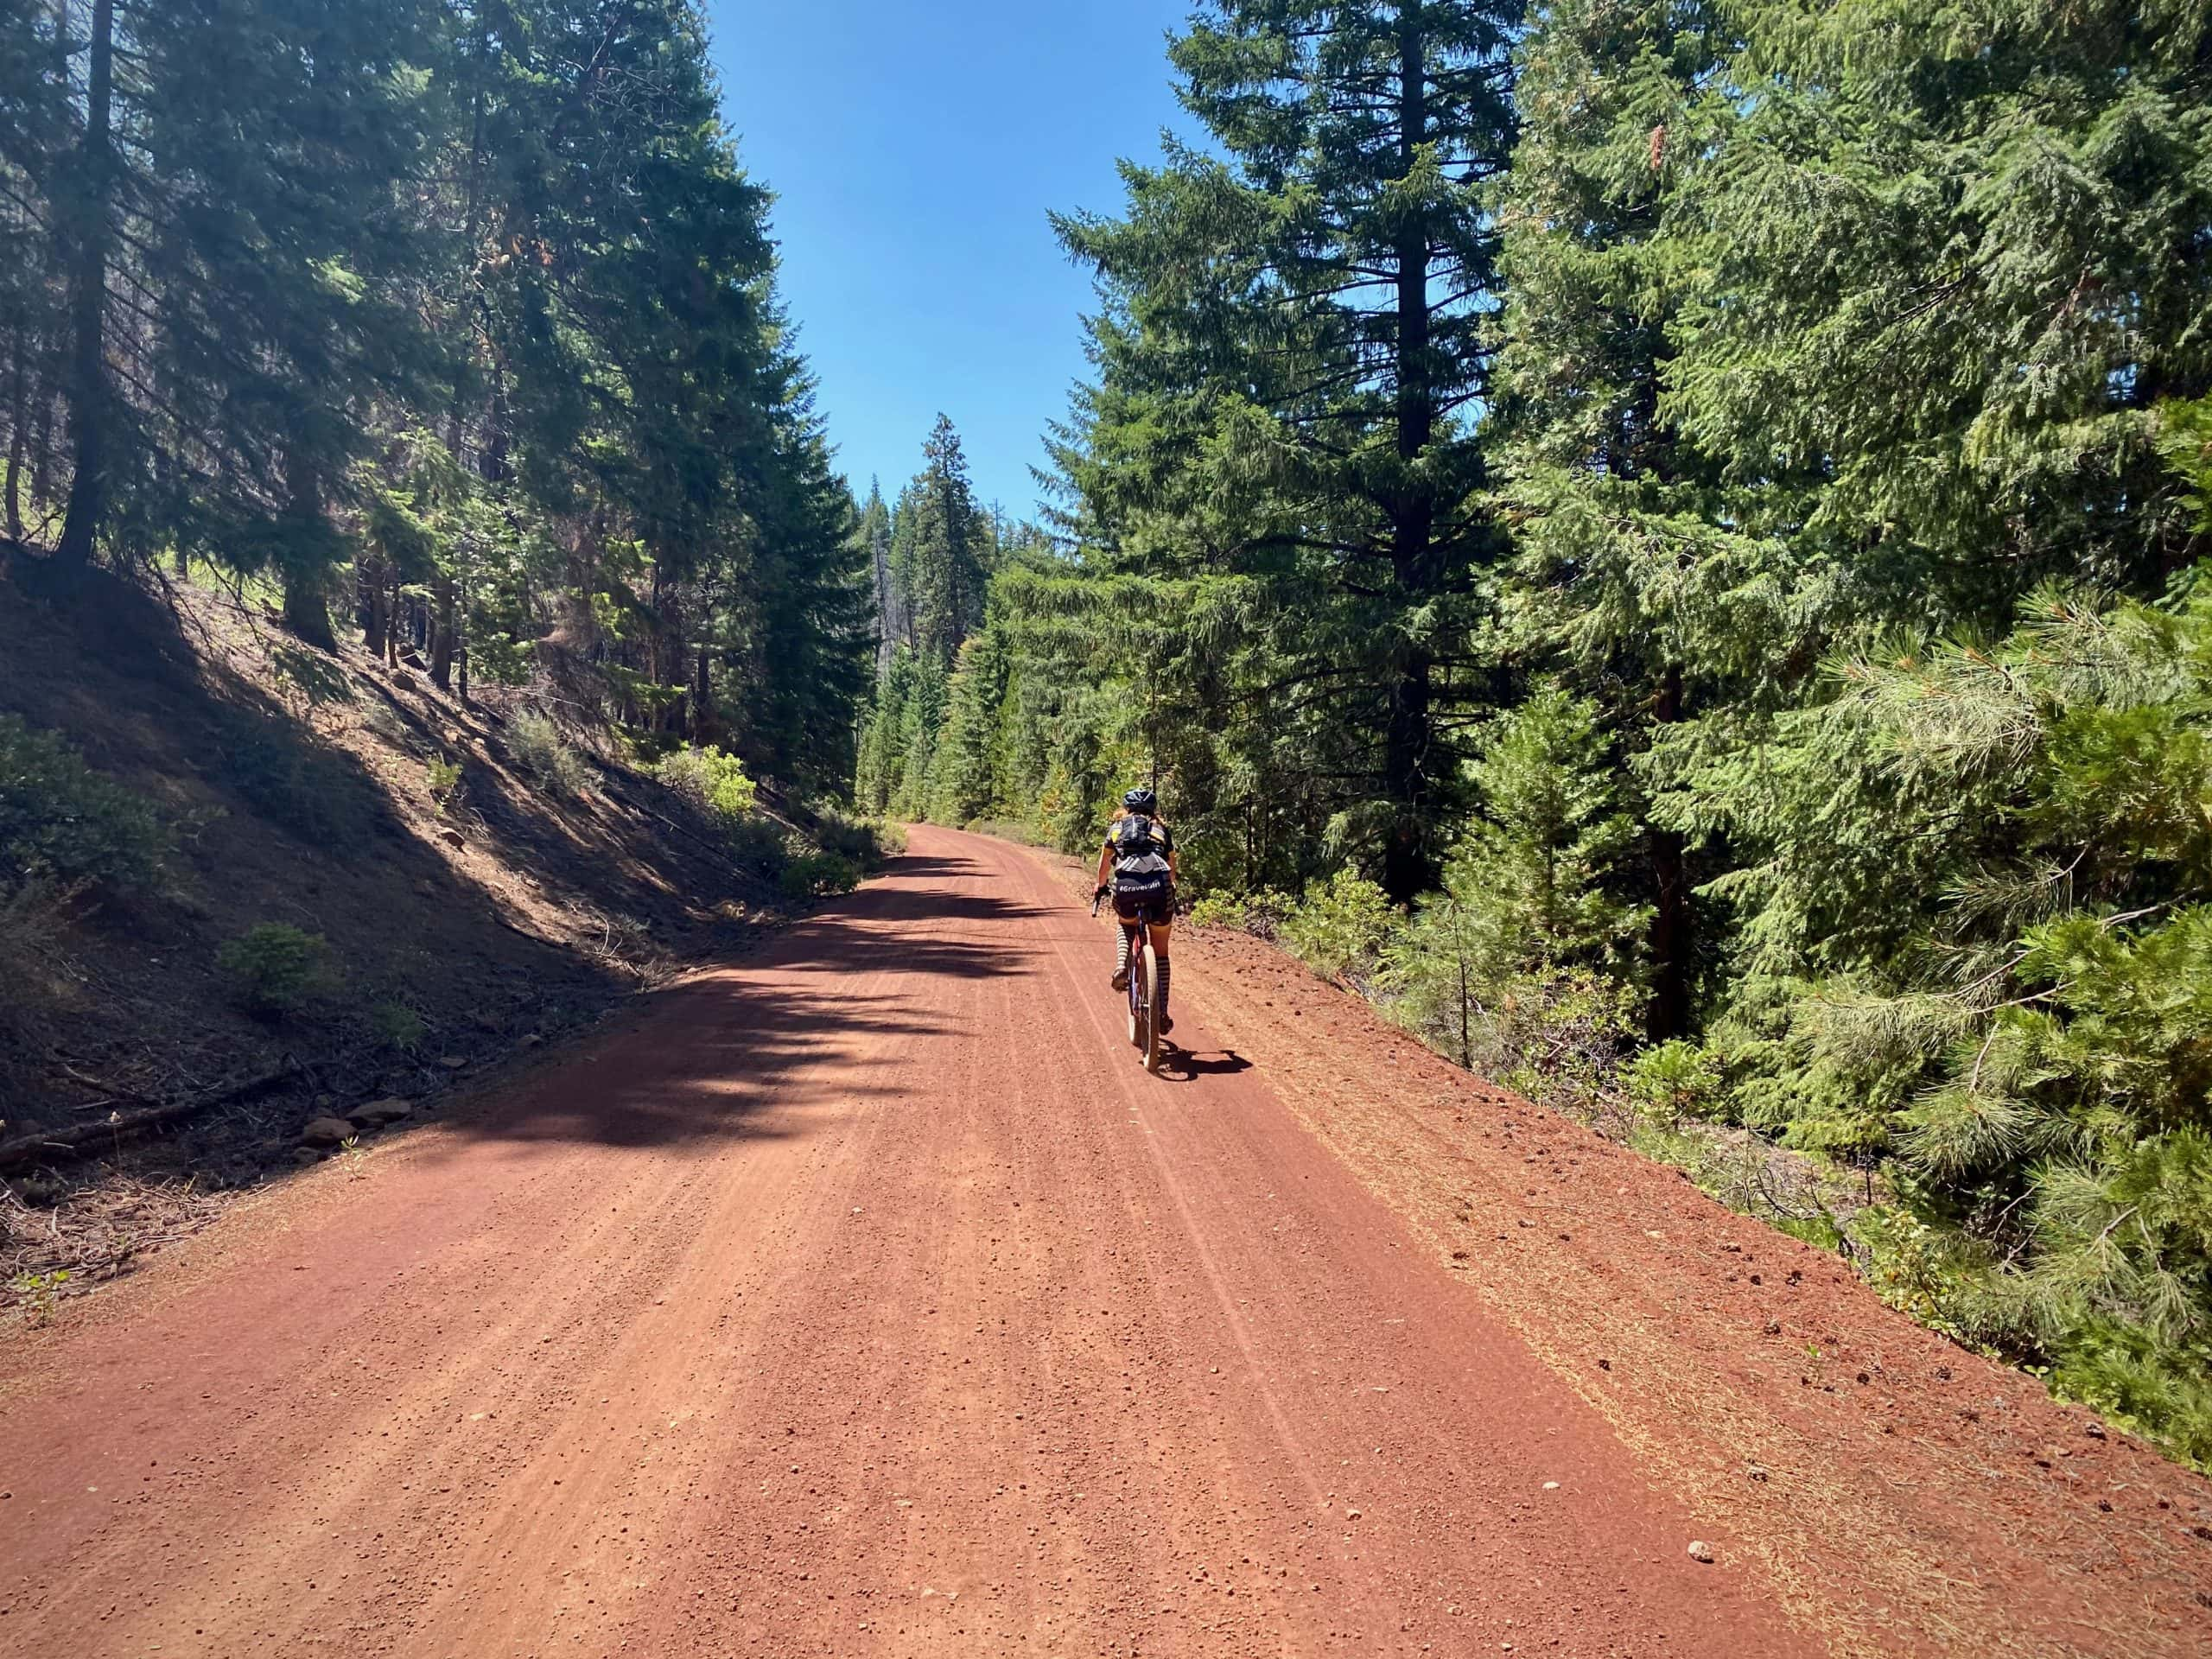 The lower portion of the road leading to Green Ridge lookout is red cinder, with gravel cyclist riding it.